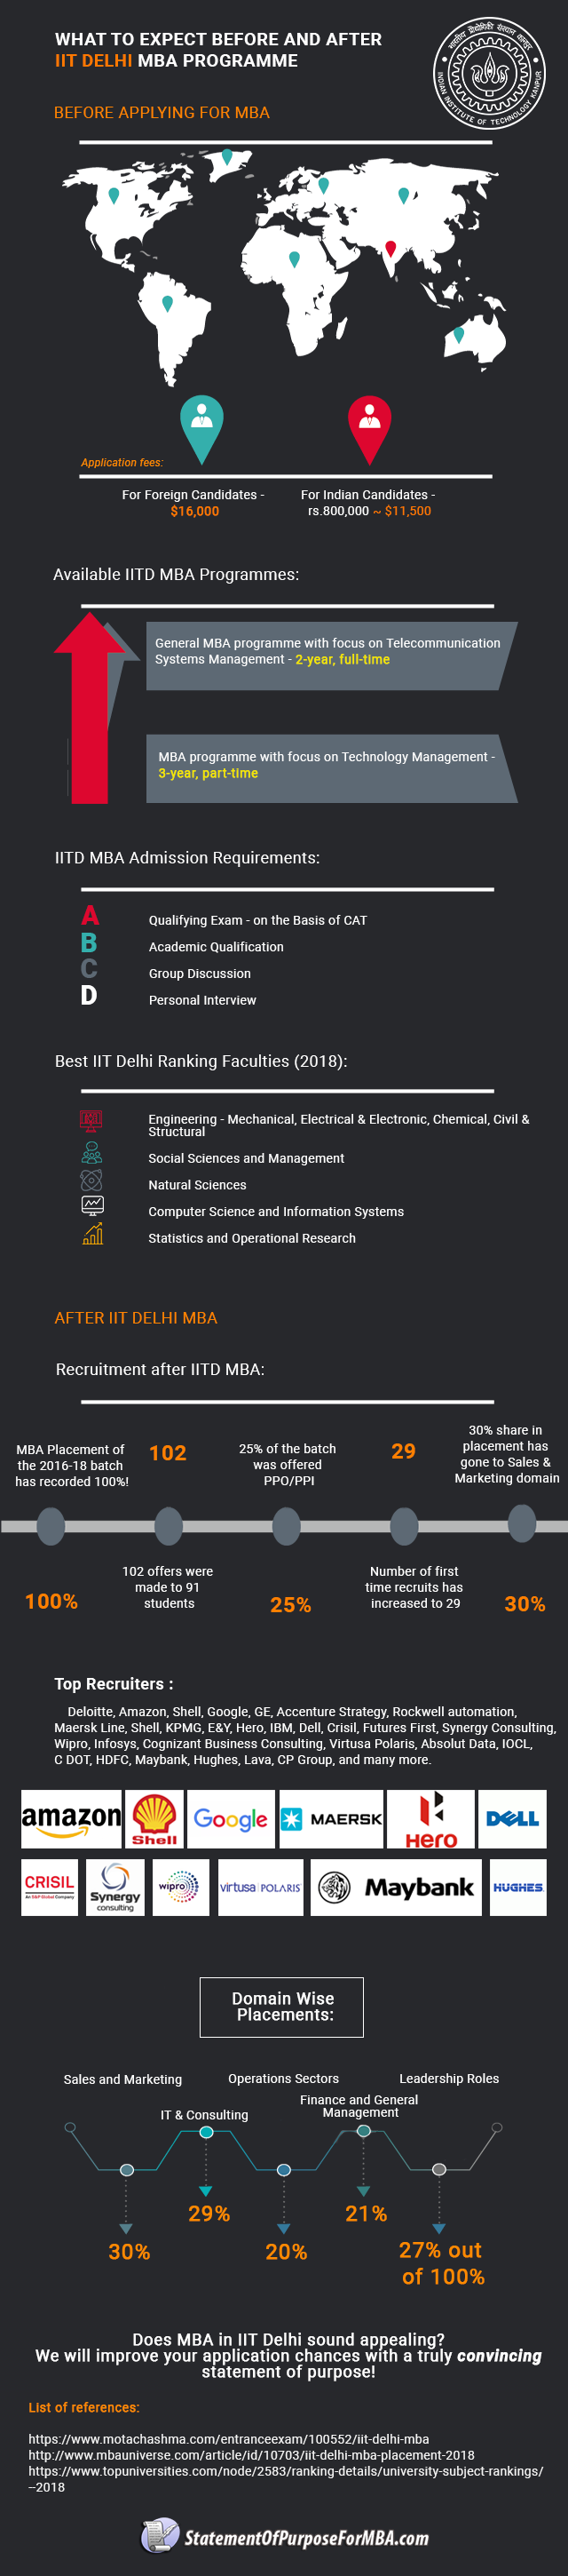 iit-delhi-mba-placements-and-admissions-criteria-in-2019-infographic-plaza